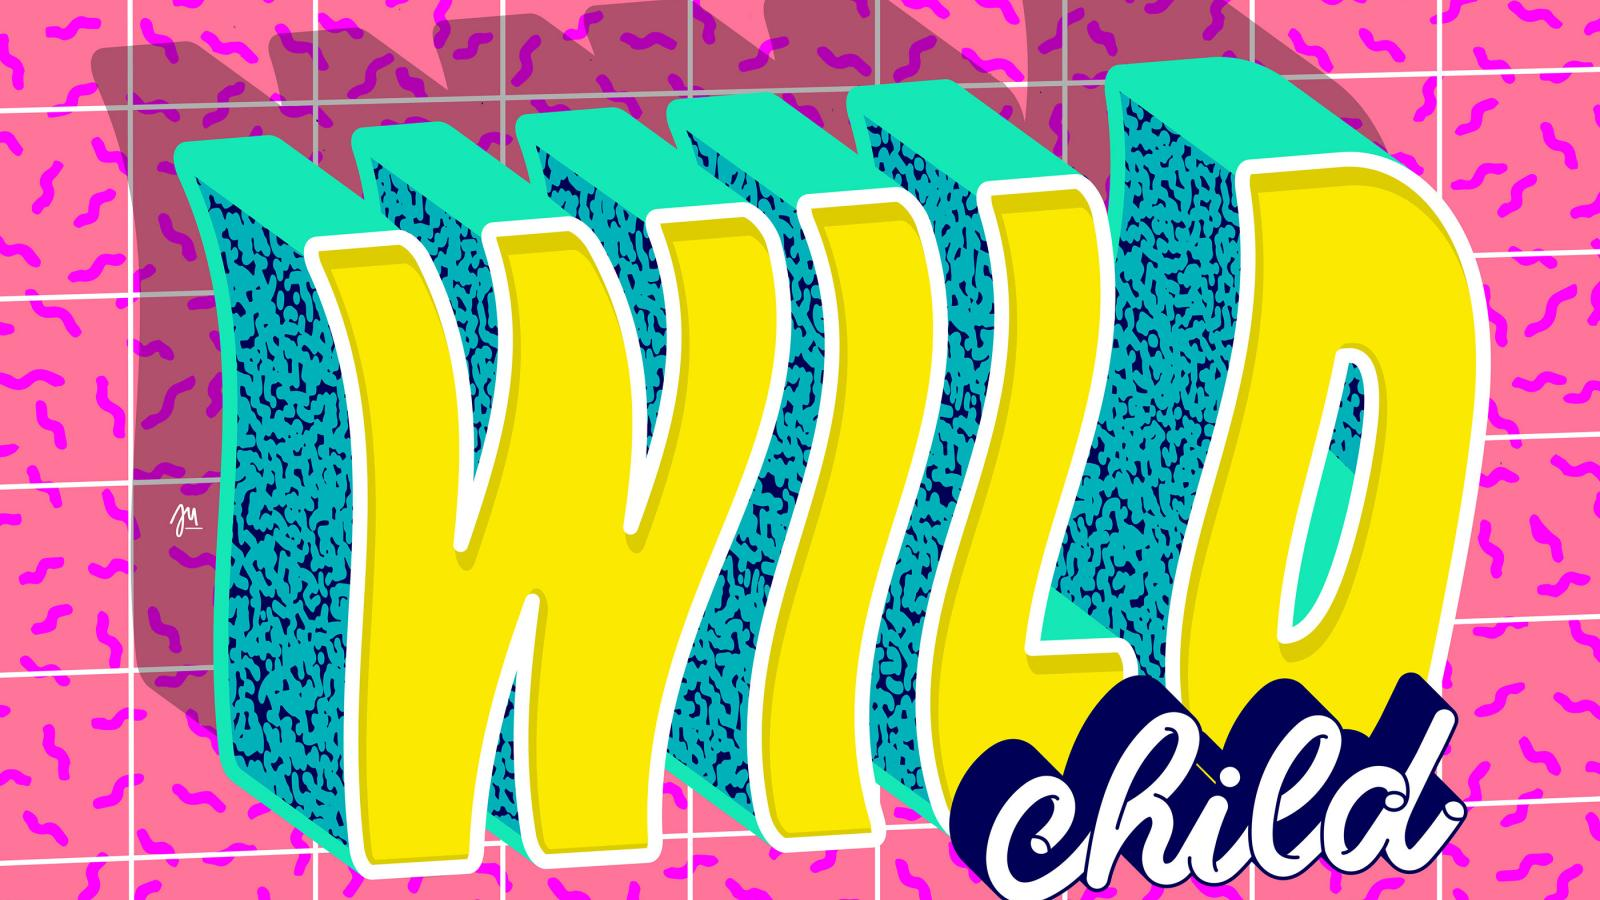 90s Style & Vibrant Lettering Works by Ju Schnee